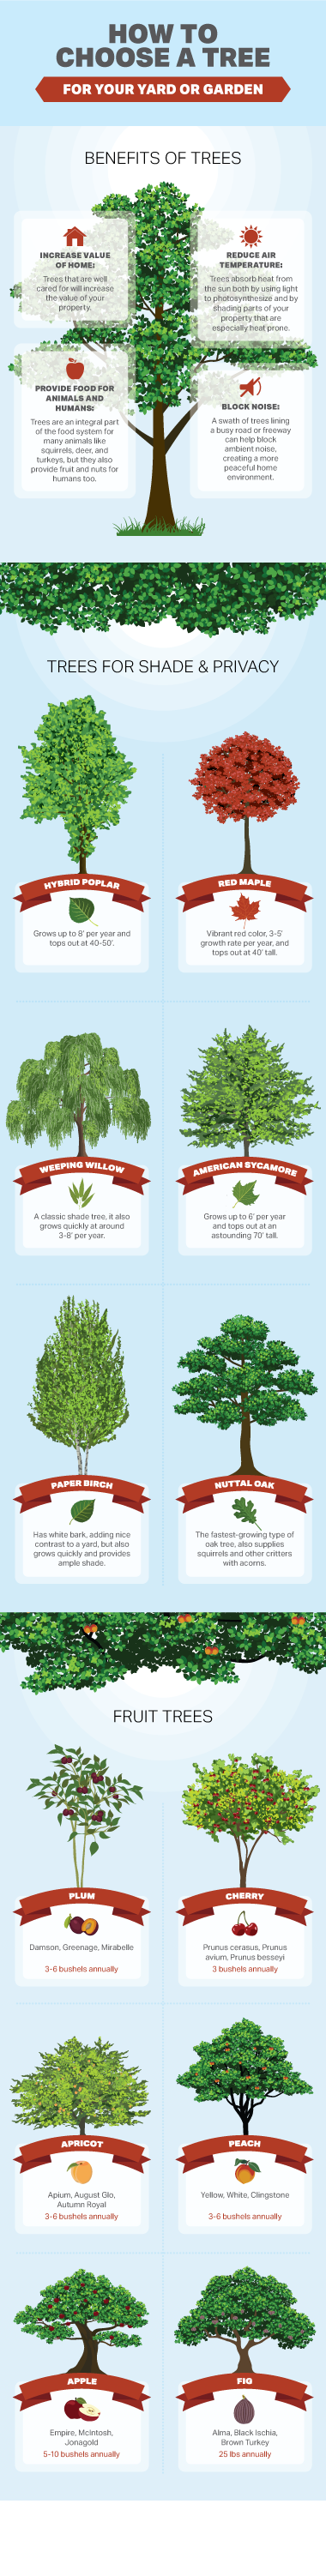 How to Choose a Tree For Your Yard or Garden